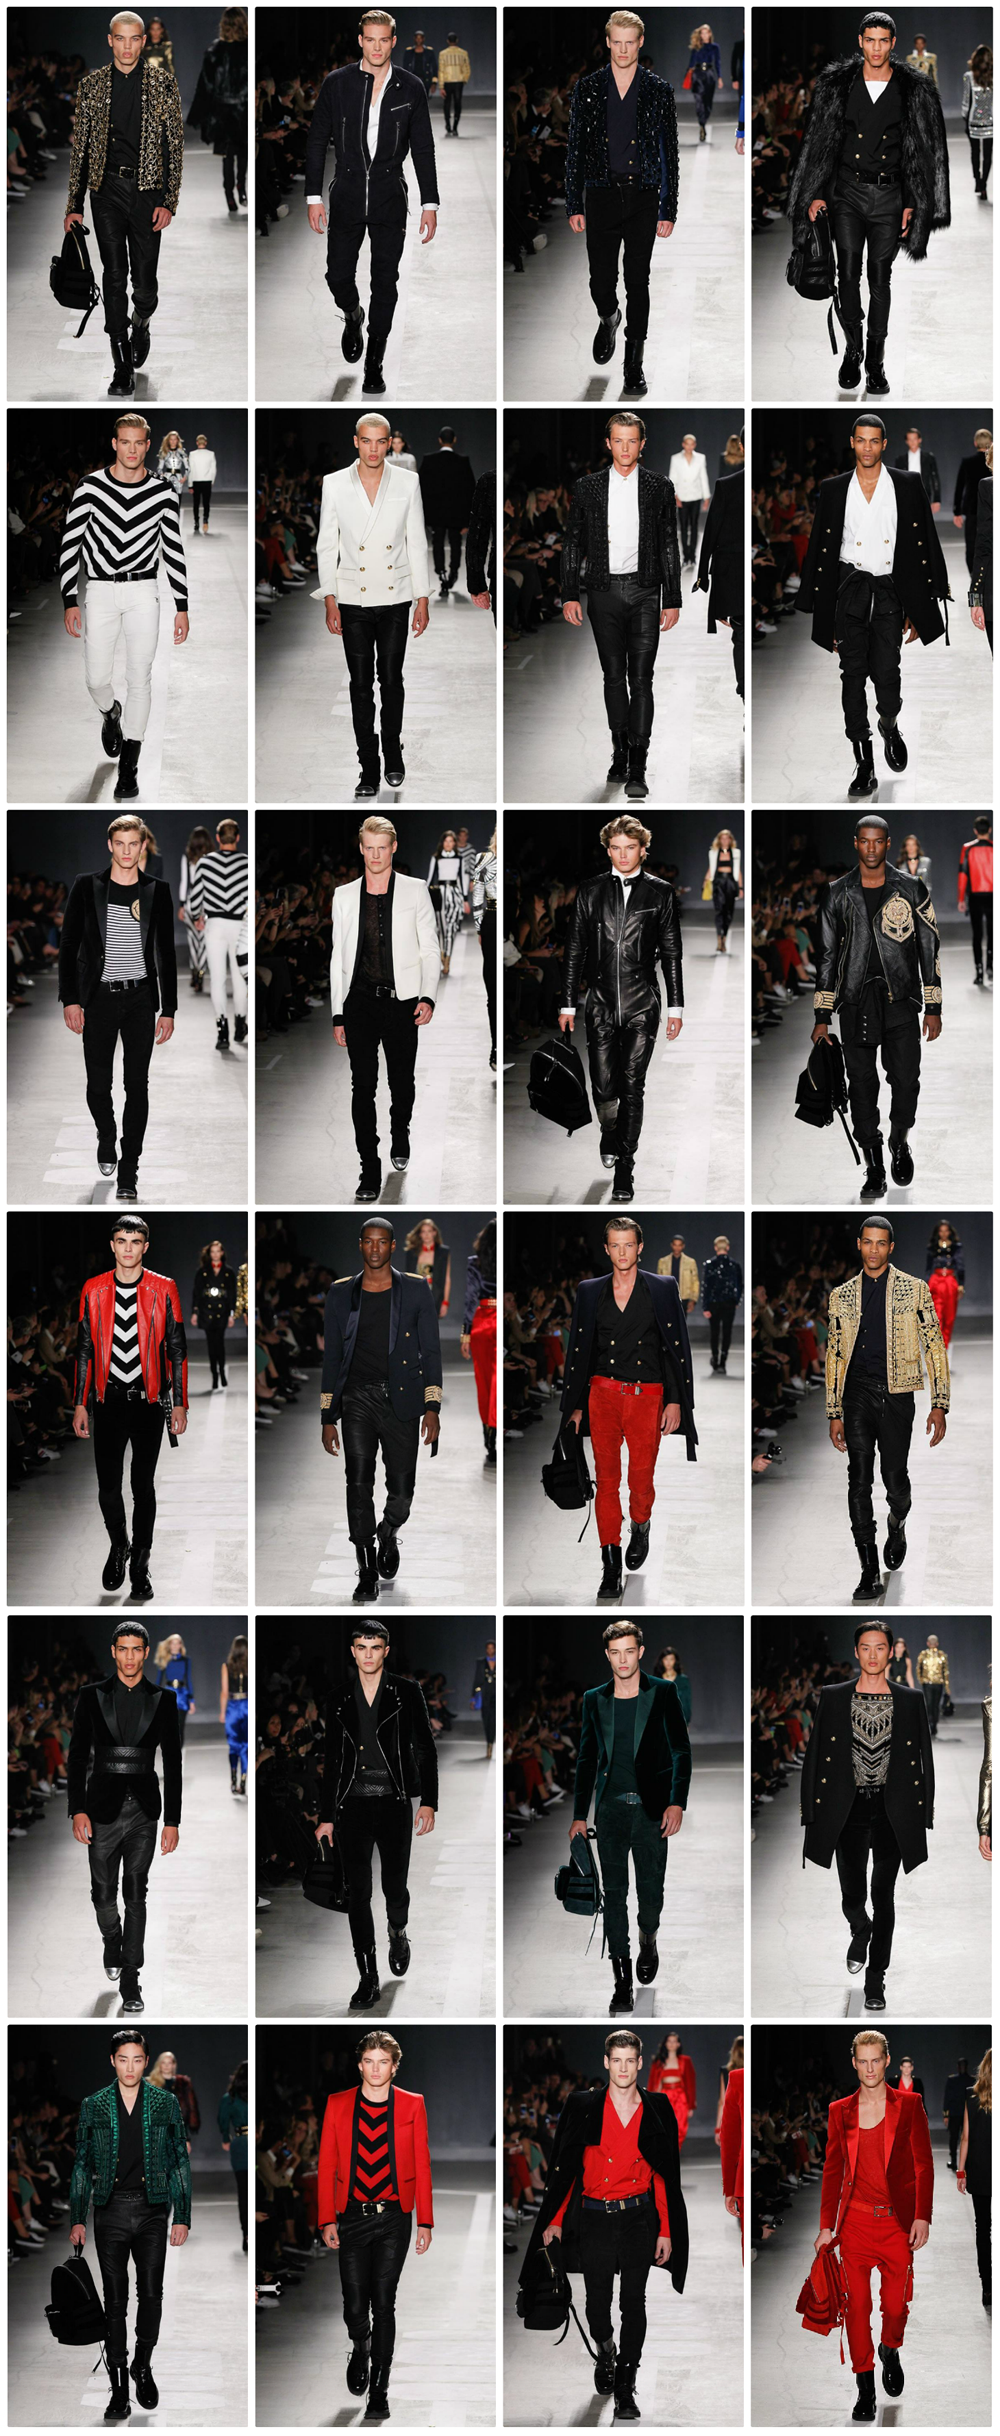 balmain_x_hm_menswear-full-collection-runway-catwalk-formen-nagy1.png